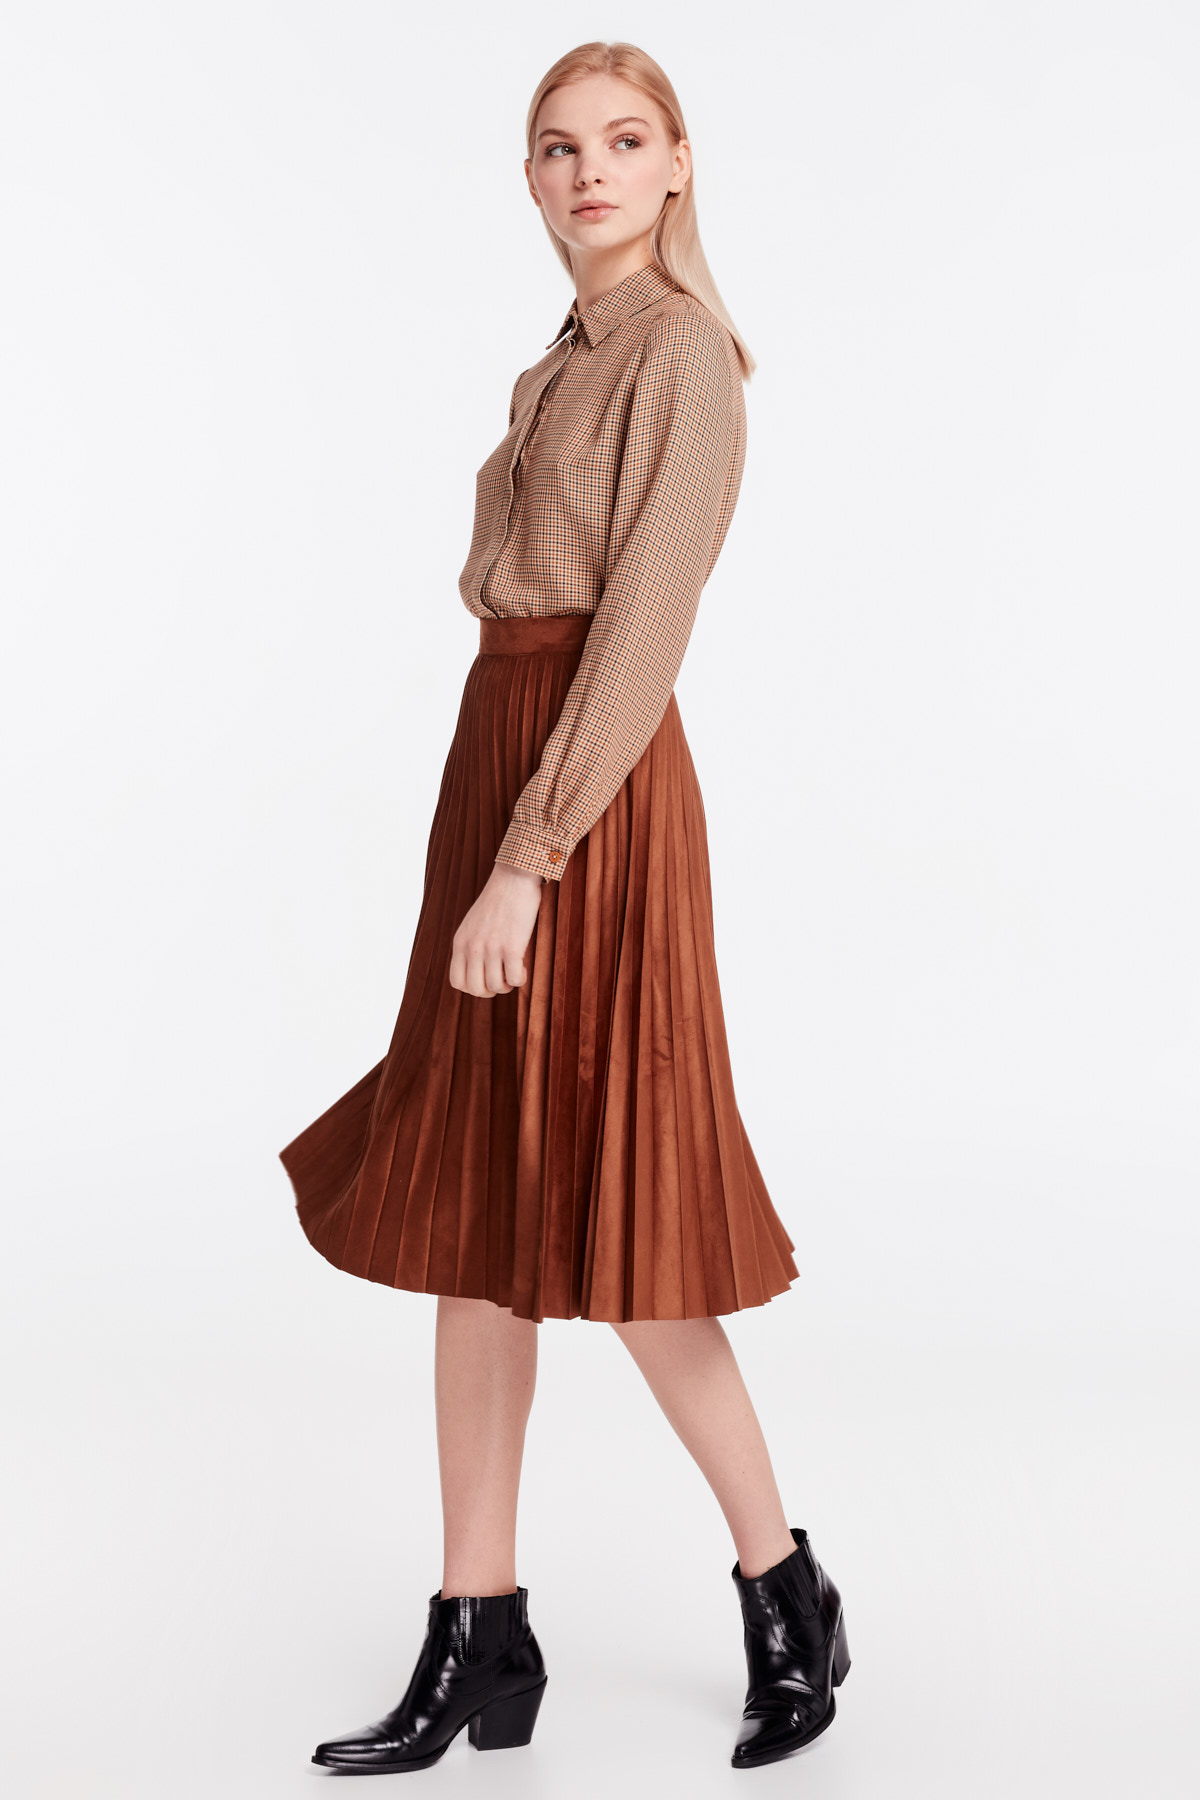 7c1d601ed5 Brown suede pleated skirt photo 3 - MustHave online store